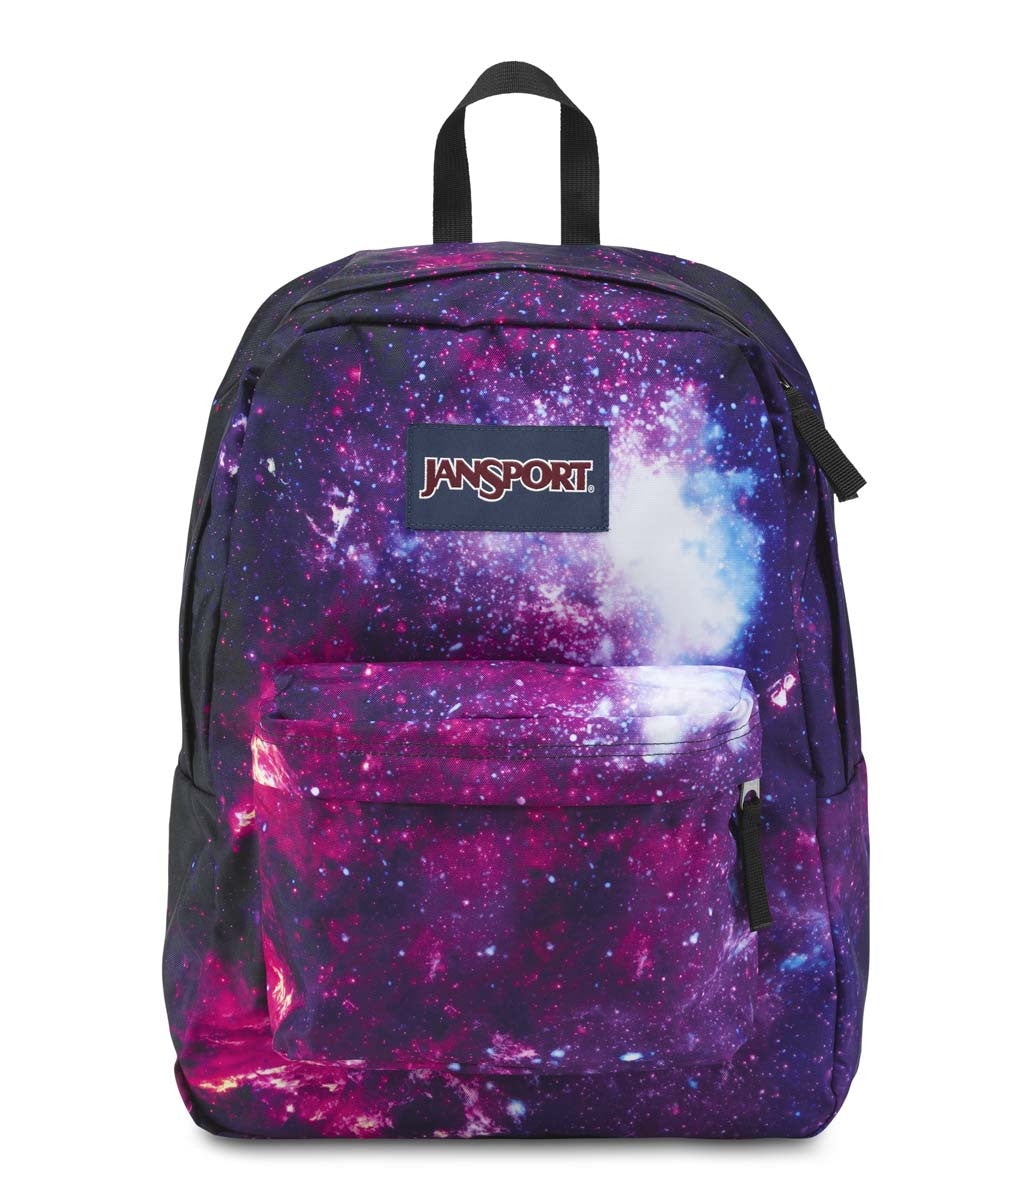 6ec16f2136eb JANSPORT High Stakes Backpack - Multi Intergalactica - New Star